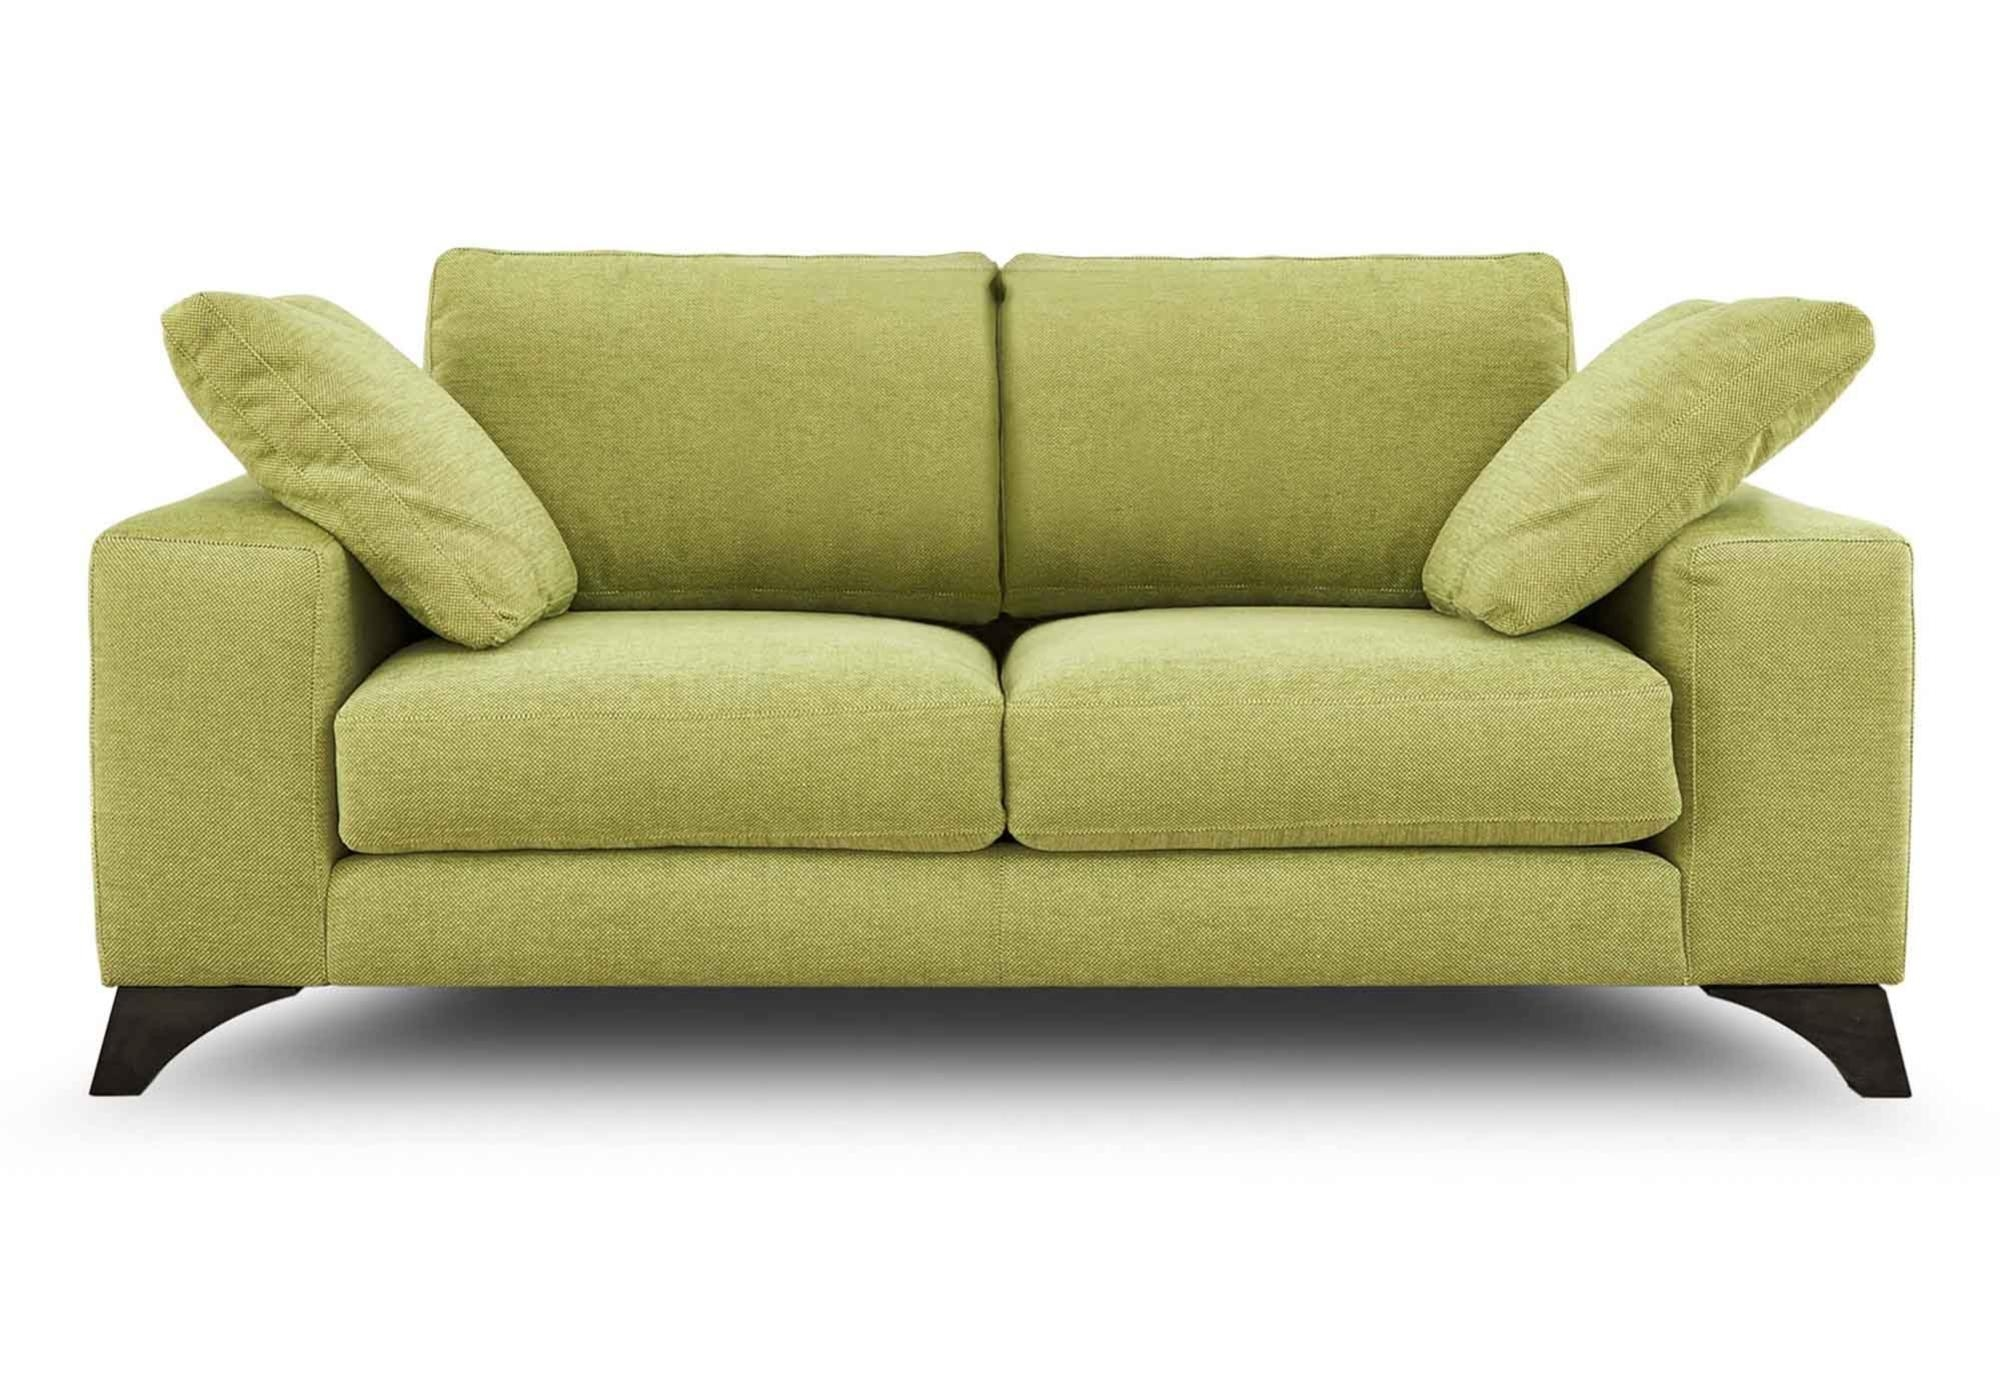 Chartreuse Sofa With Design Ideas 27453 | Kengire Regarding Chartreuse Sofas (View 13 of 20)